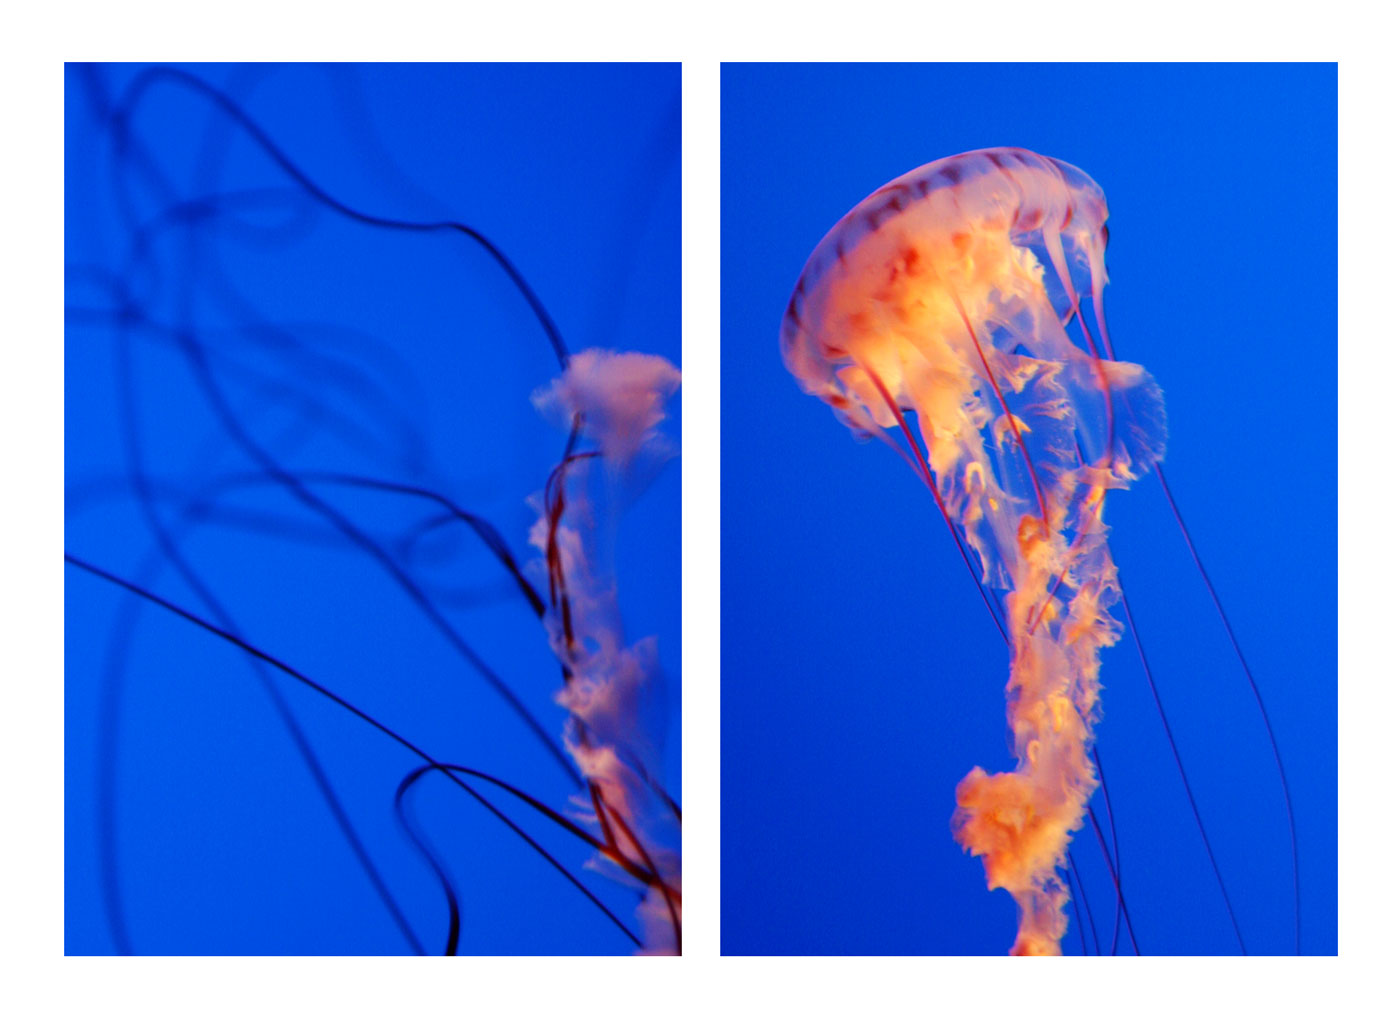 Jellyfish_spread-web2016.jpg